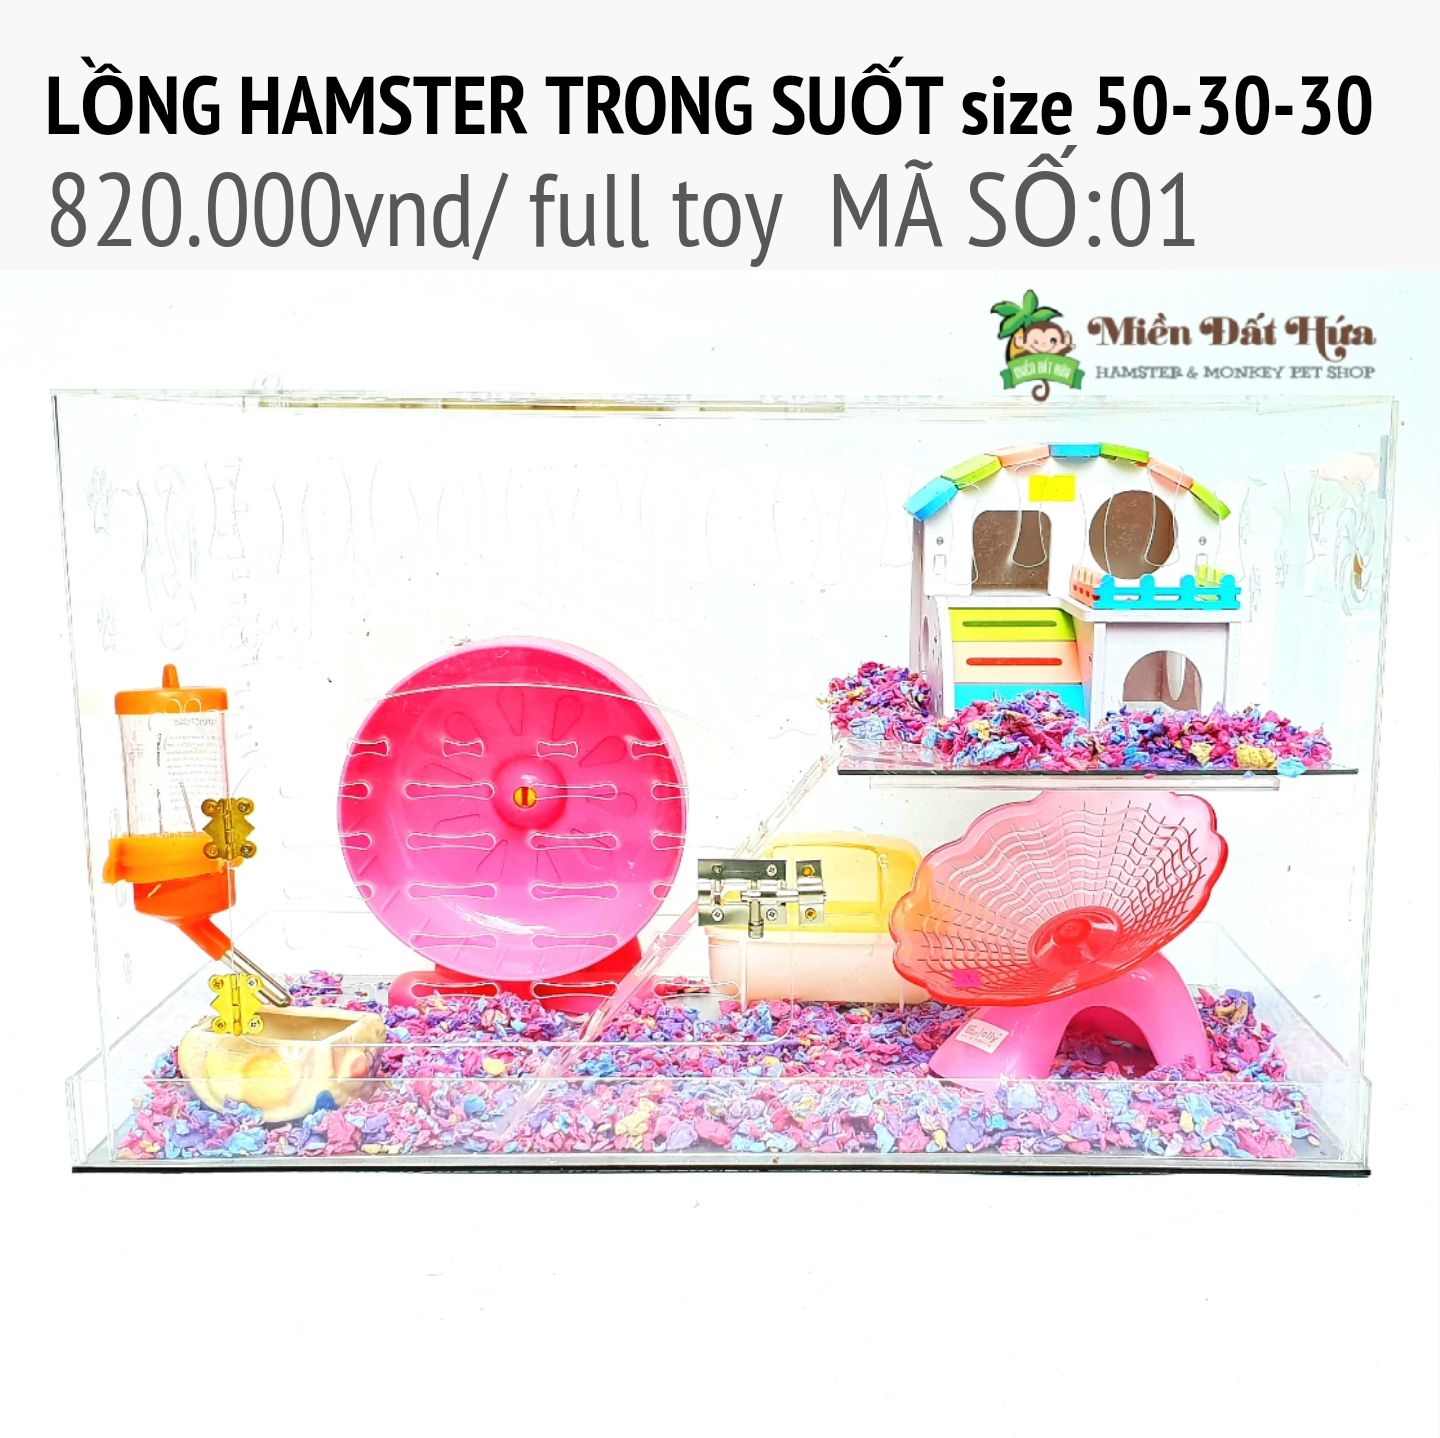 LỒNG hamster trong suốt size 50-30-30 ms01